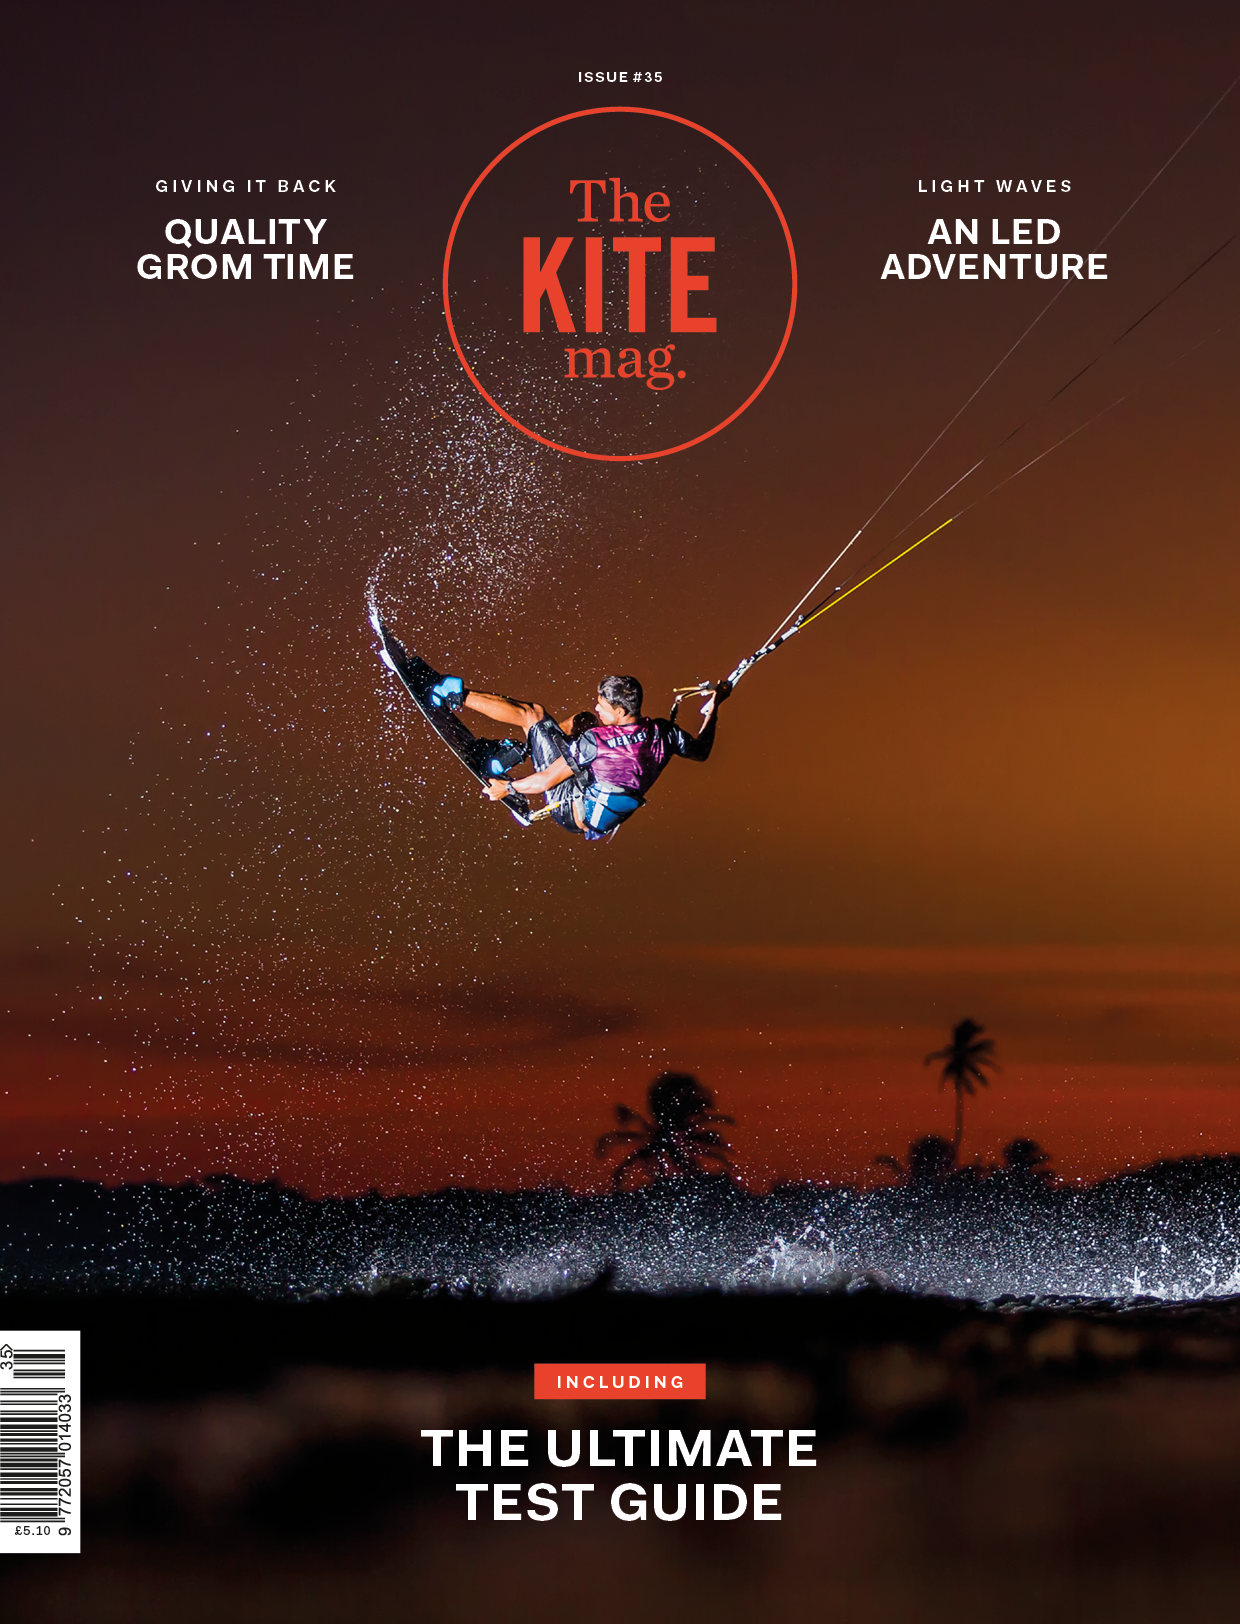 191218 TKM EN COVER 35 FINAL - THEKITEMAG ISSUE #35